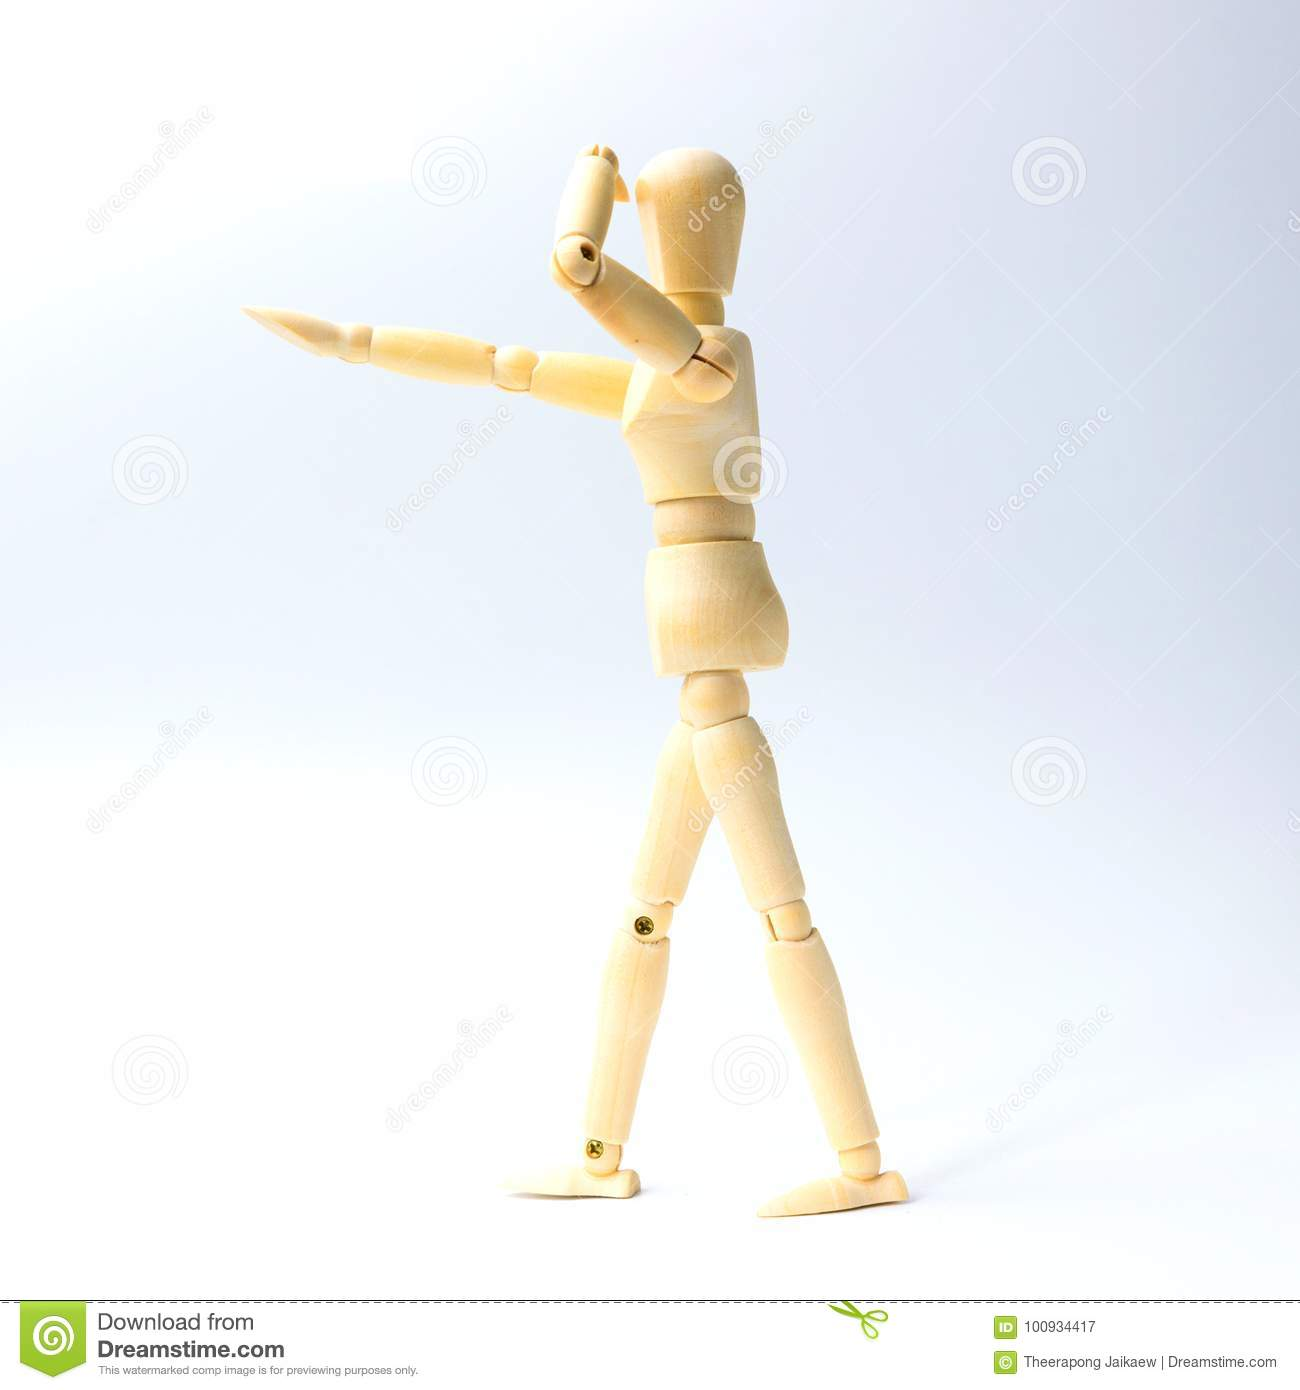 Download Wooden Figure Doll With Looking Emotion For Success Business Con Stock Image - Image of posing, mannequin: 100934417